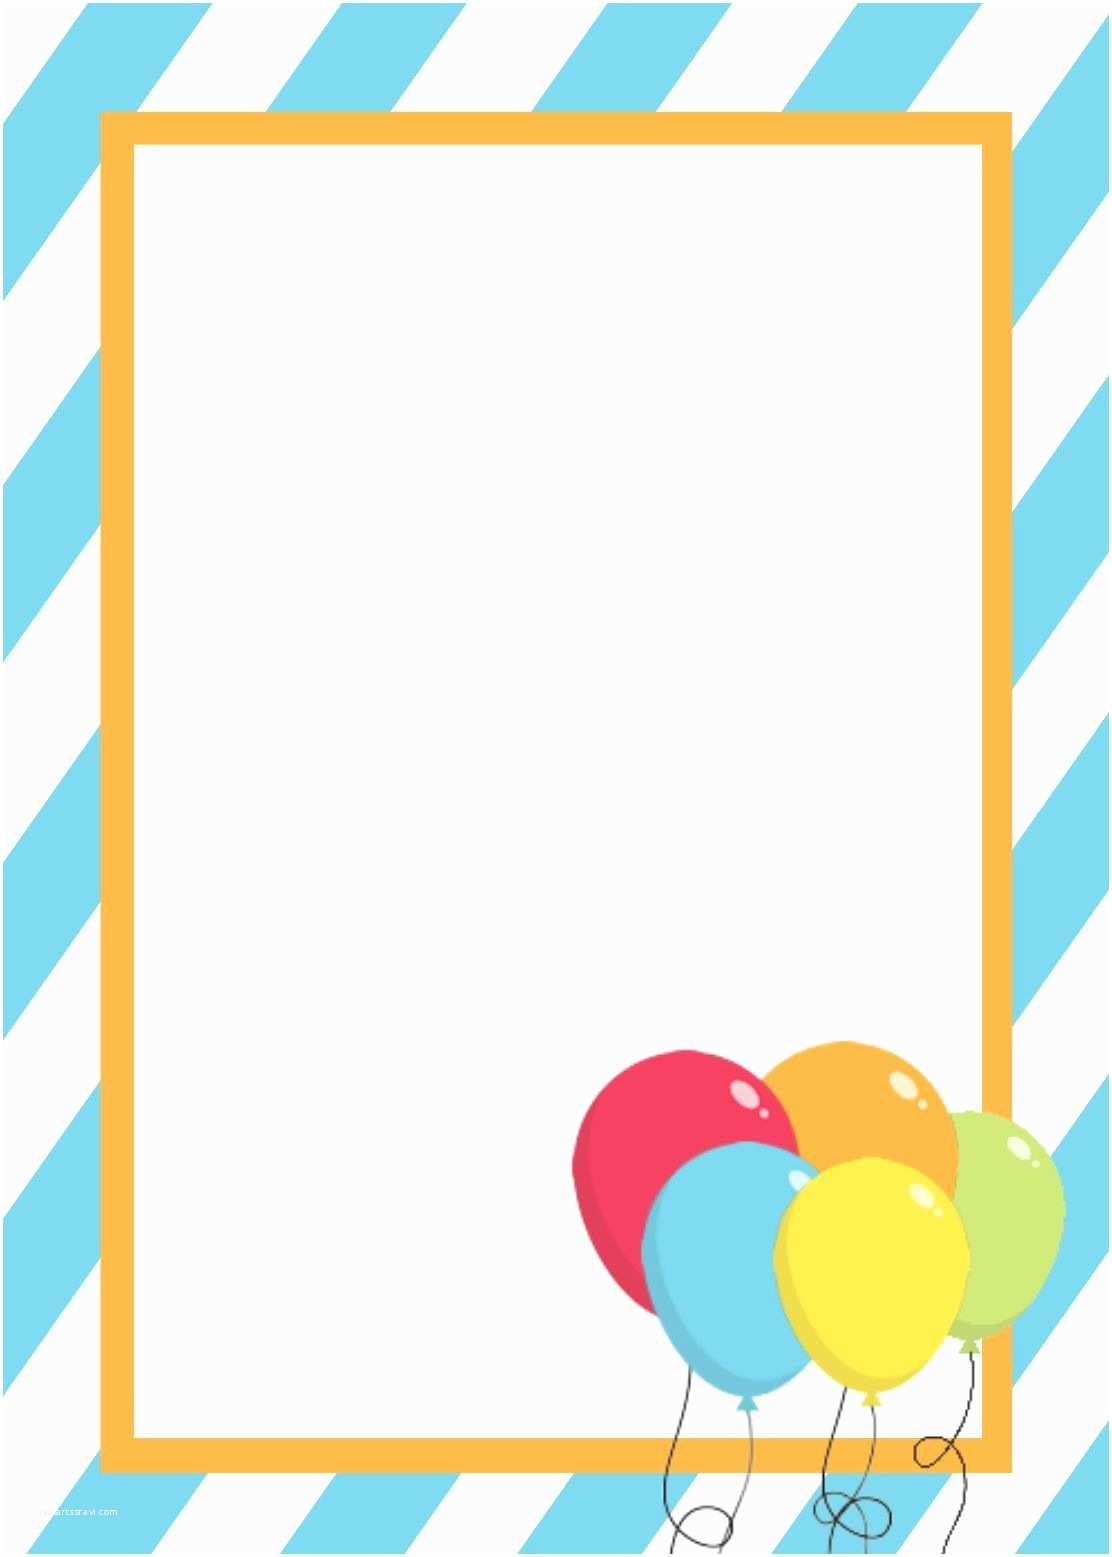 Free Birthday Party Invitation Templates Blank Invitation Templates Free for Word Blank Birthday